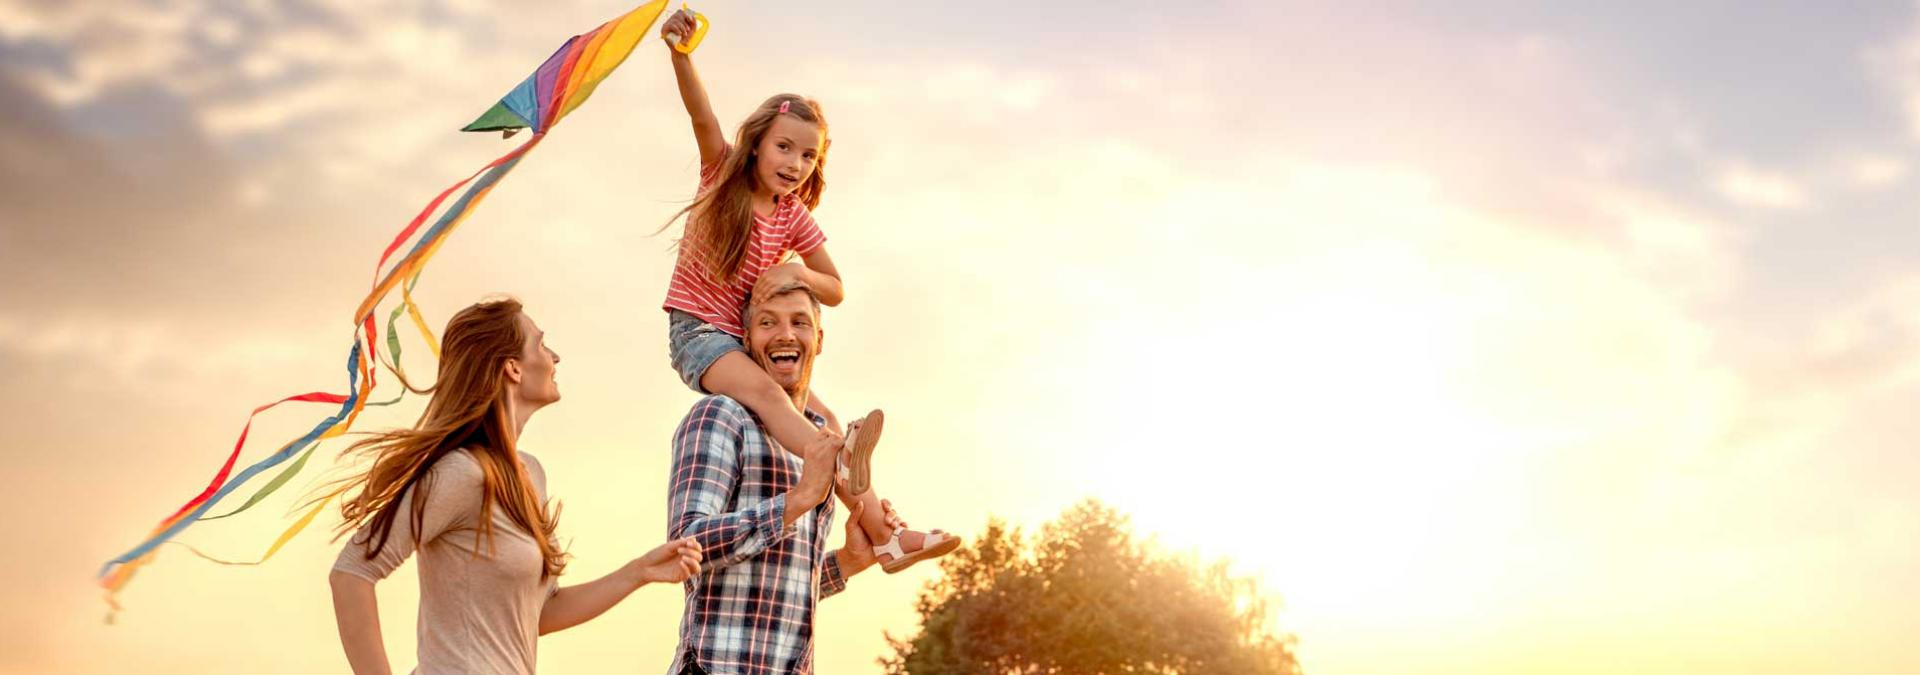 Family Running with Kite, child on dad's shoulders